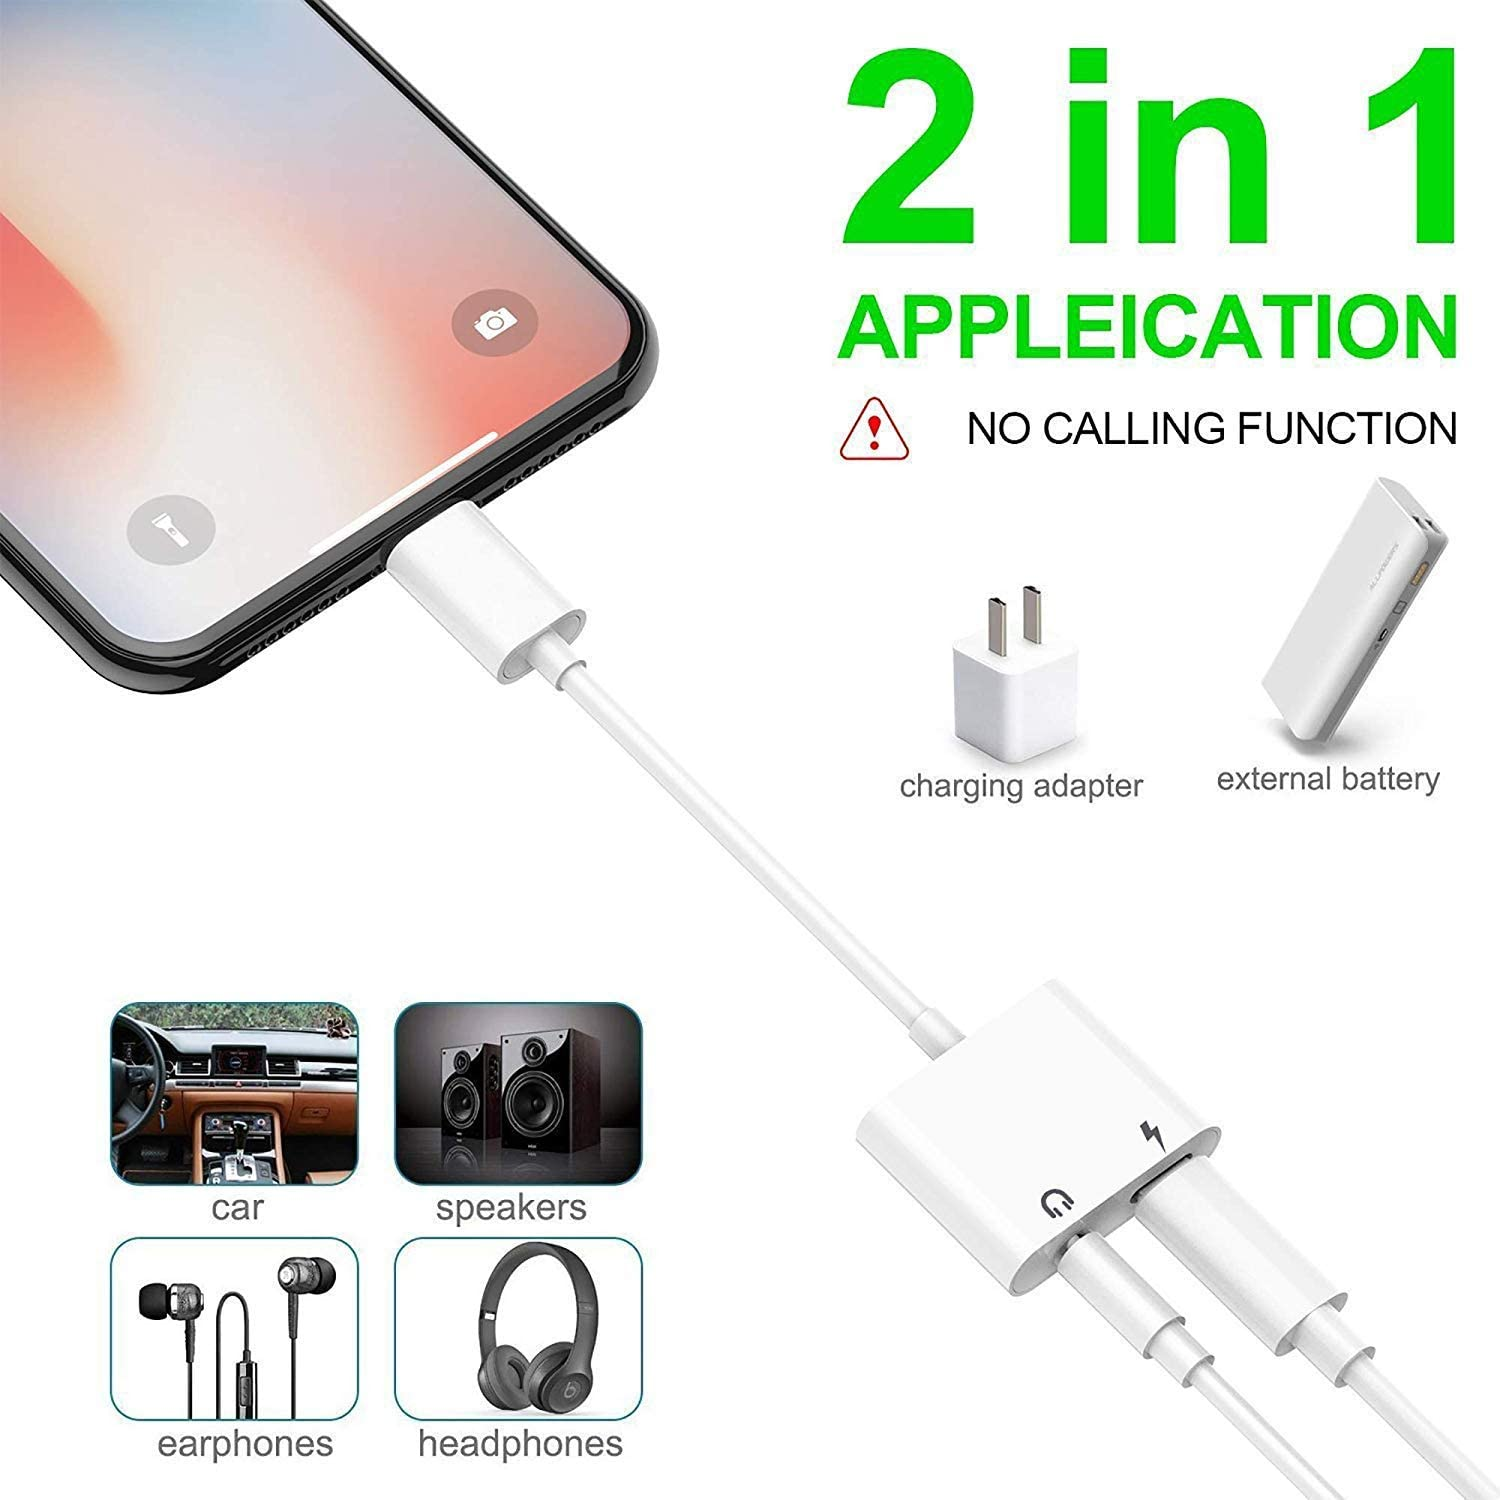 for iPhone 3.5mm Headphone Adapter Splitter Cable Accessories Aux Cable for iPhone8//8 Plus//7//7Plus//11//X//XR 2 in 1 Audio Adapter /& Charger Dongle Adaptor Earphone Audio Connector Support All iOS Syste